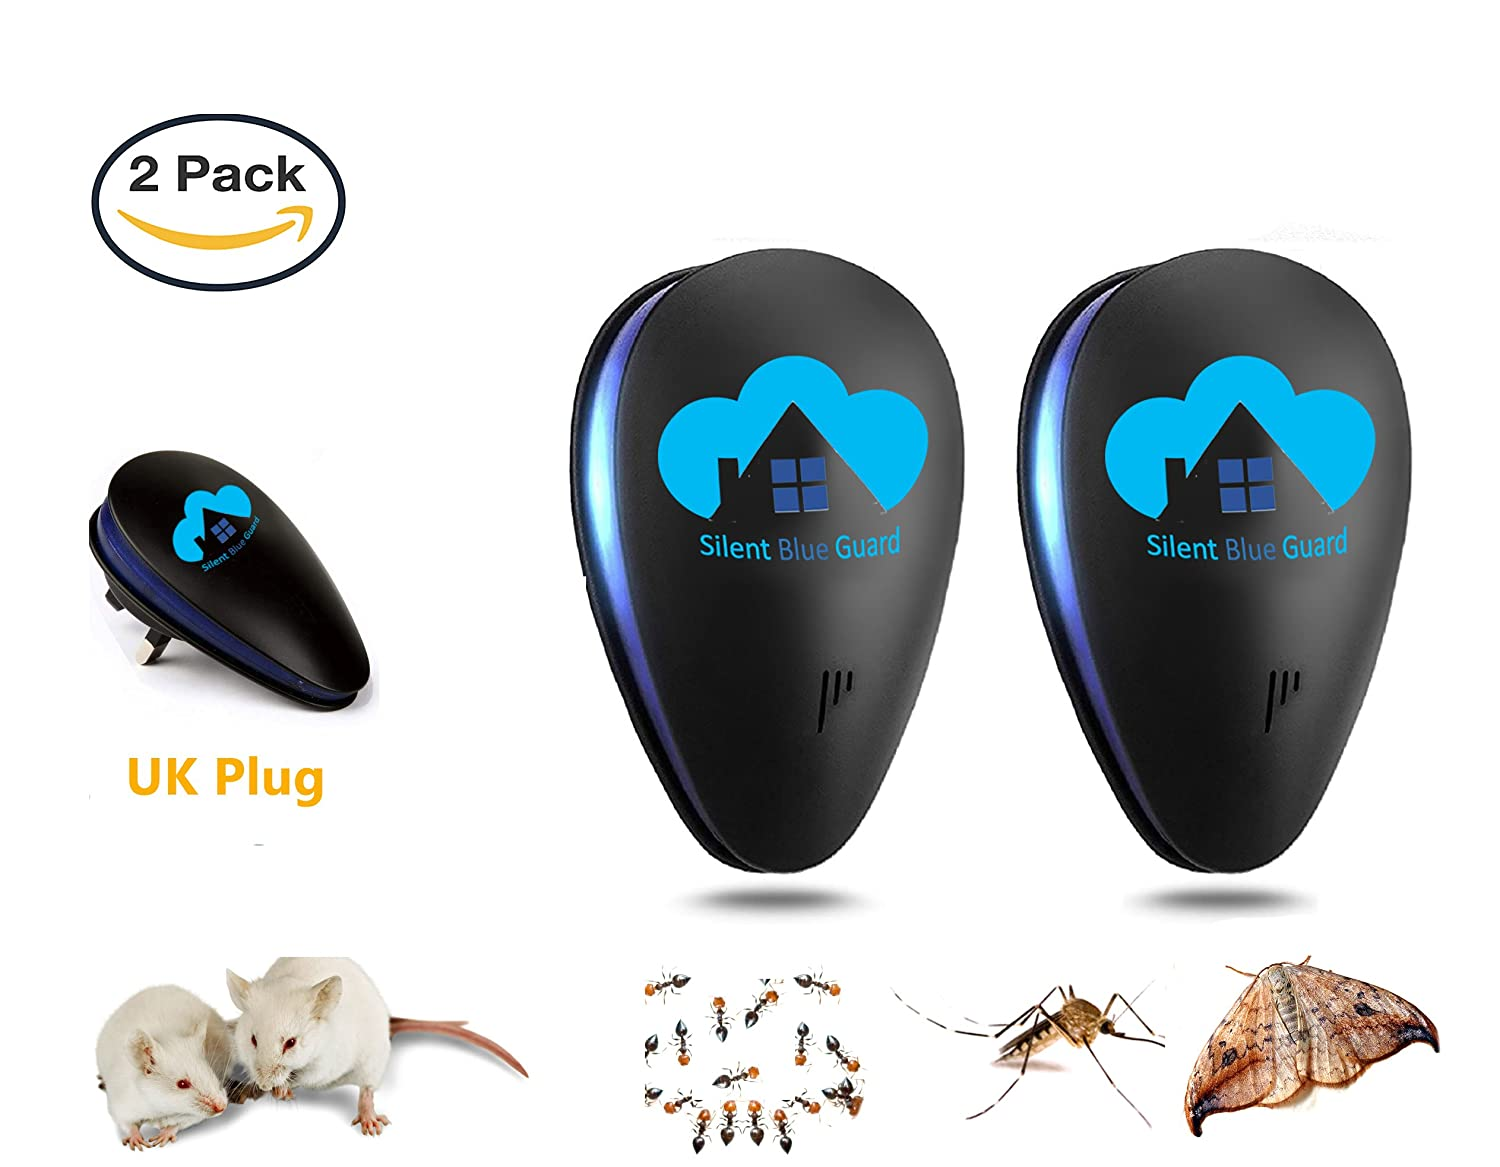 Silent Blue Guard Uk Ultrasonic Pest Repeller Controls Moths Mice Mosquito Repellent Circuitbest Repellentindoor Fleas Ants Insects 2 Pack Black Garden Outdoors